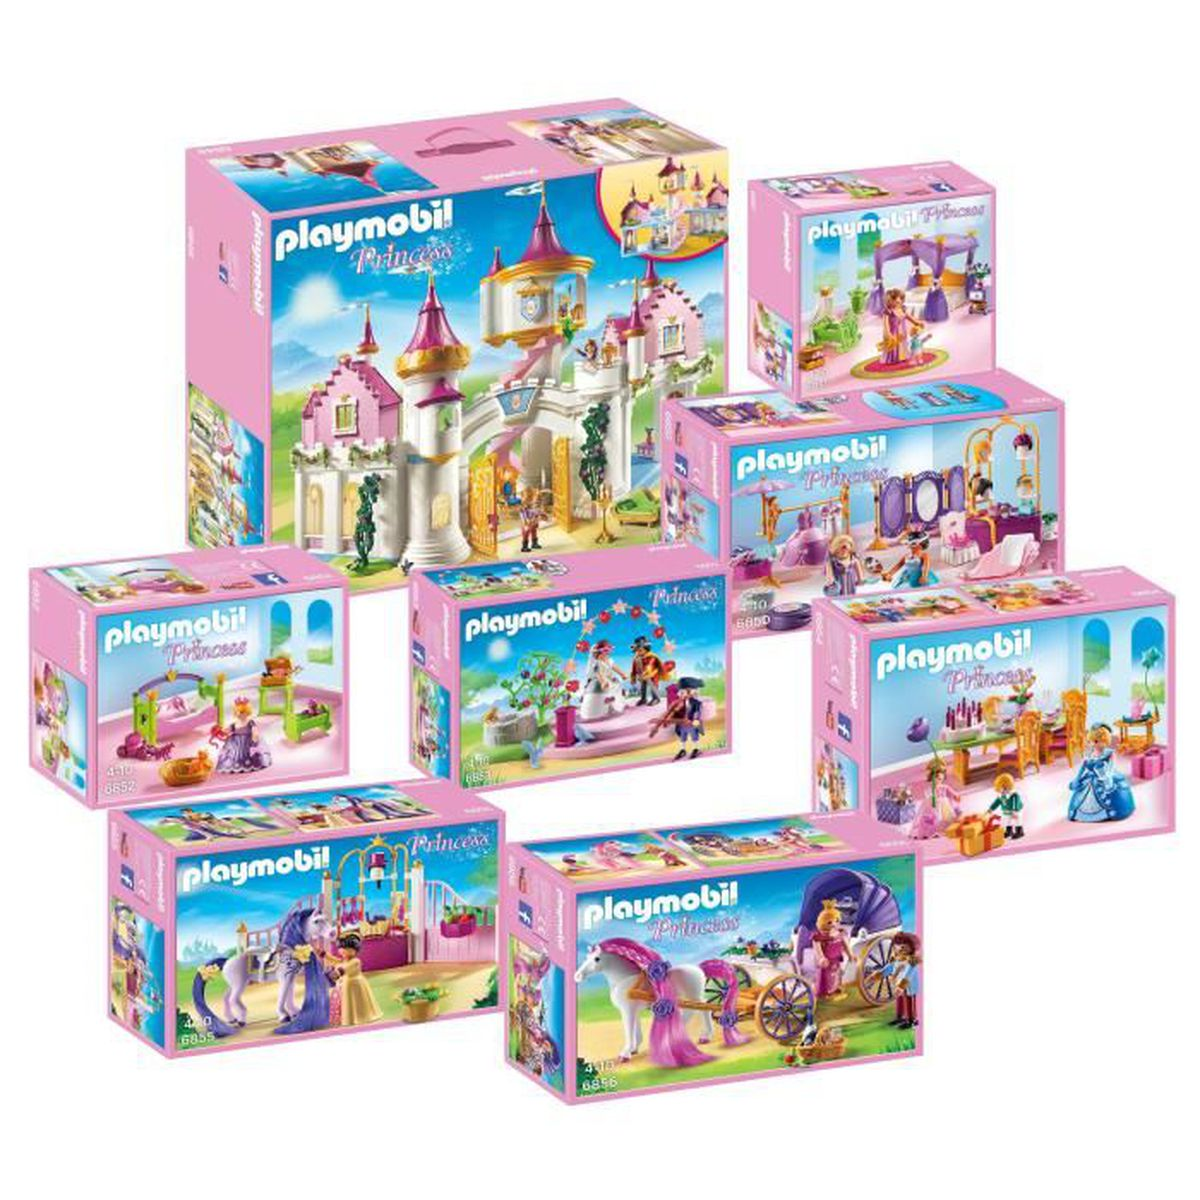 assemblage construction playmobil 6848 grand chateau de princesse set co